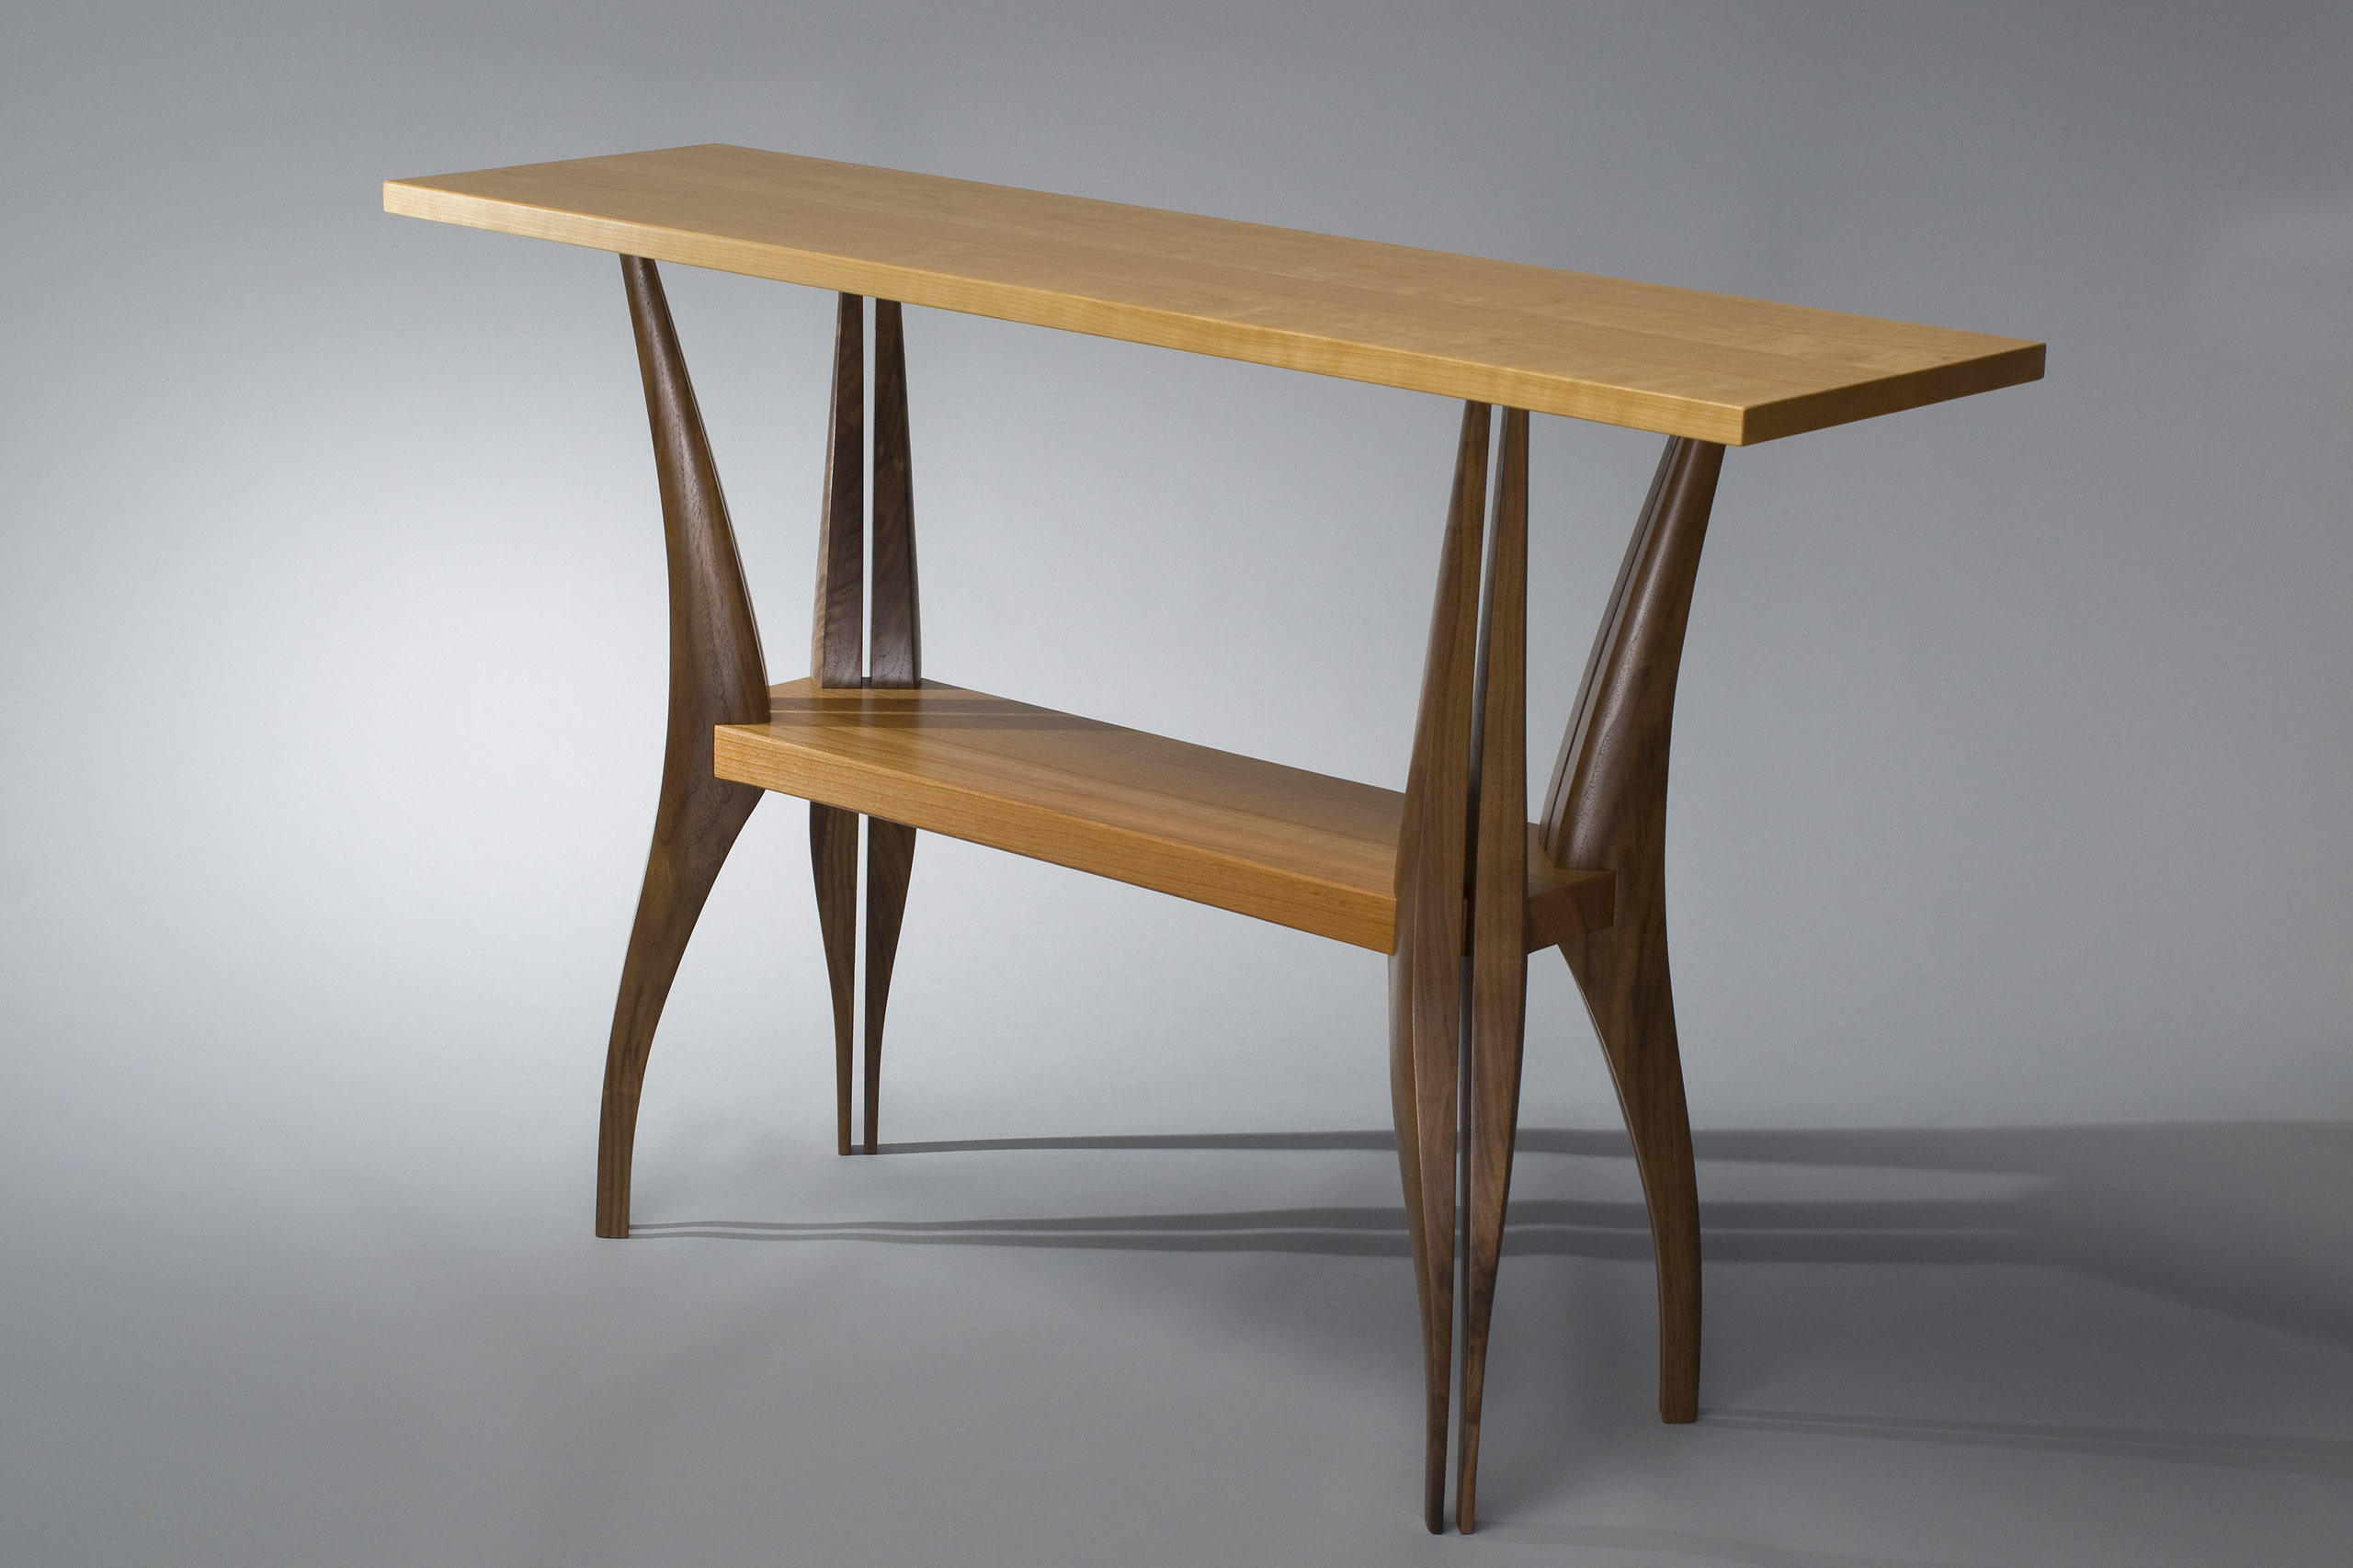 Gazelle Hall Table | Solid Walnut and Cherry Wood Table